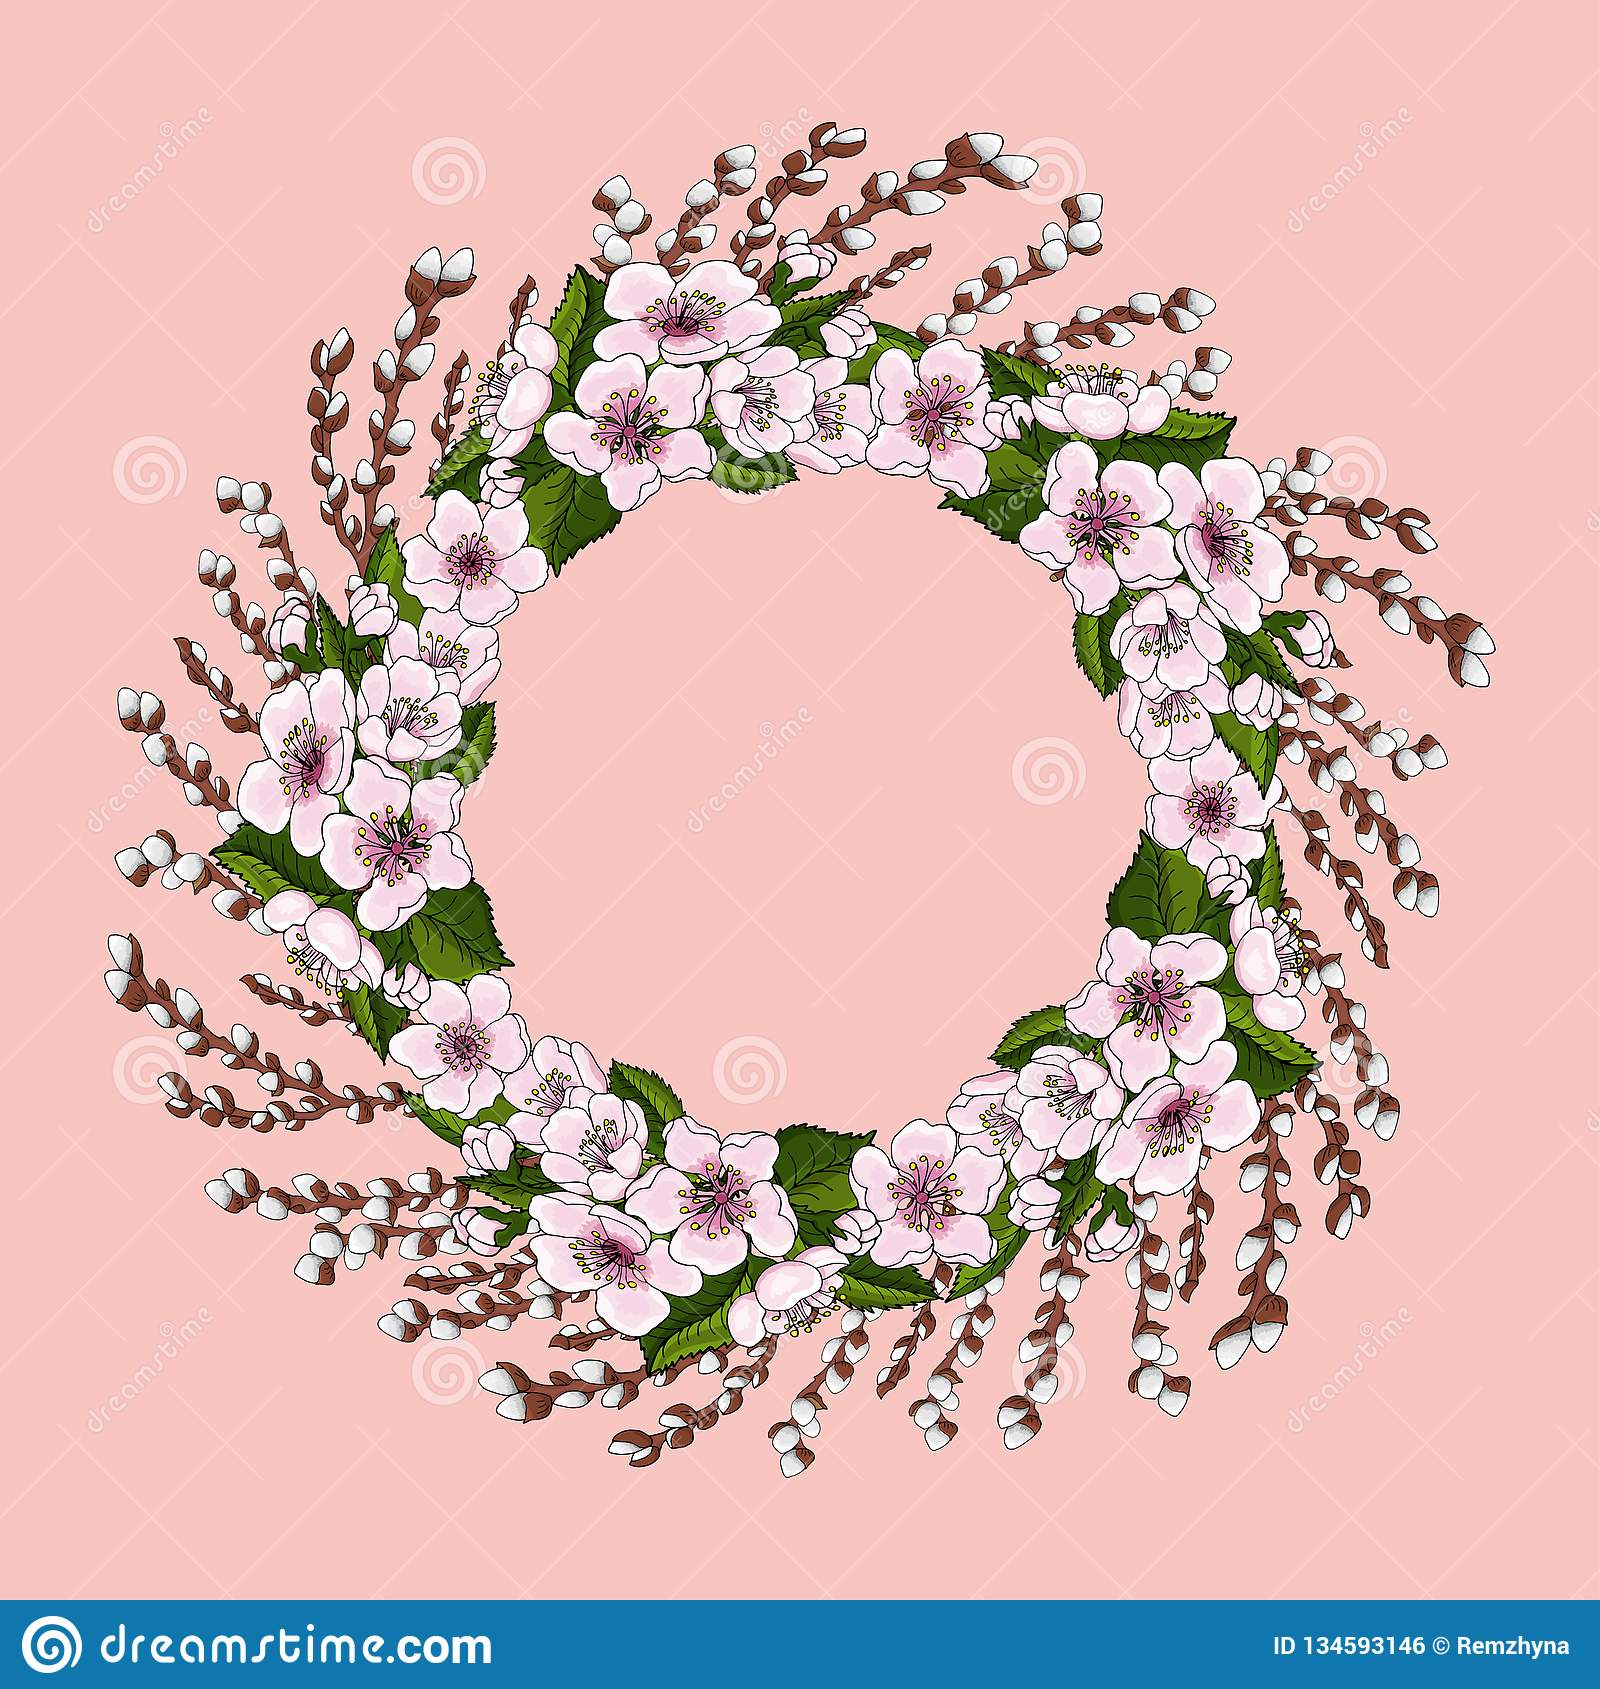 A lush wreath of pink cherry flowers and bright green cherry leaves along with young willow branches.нета